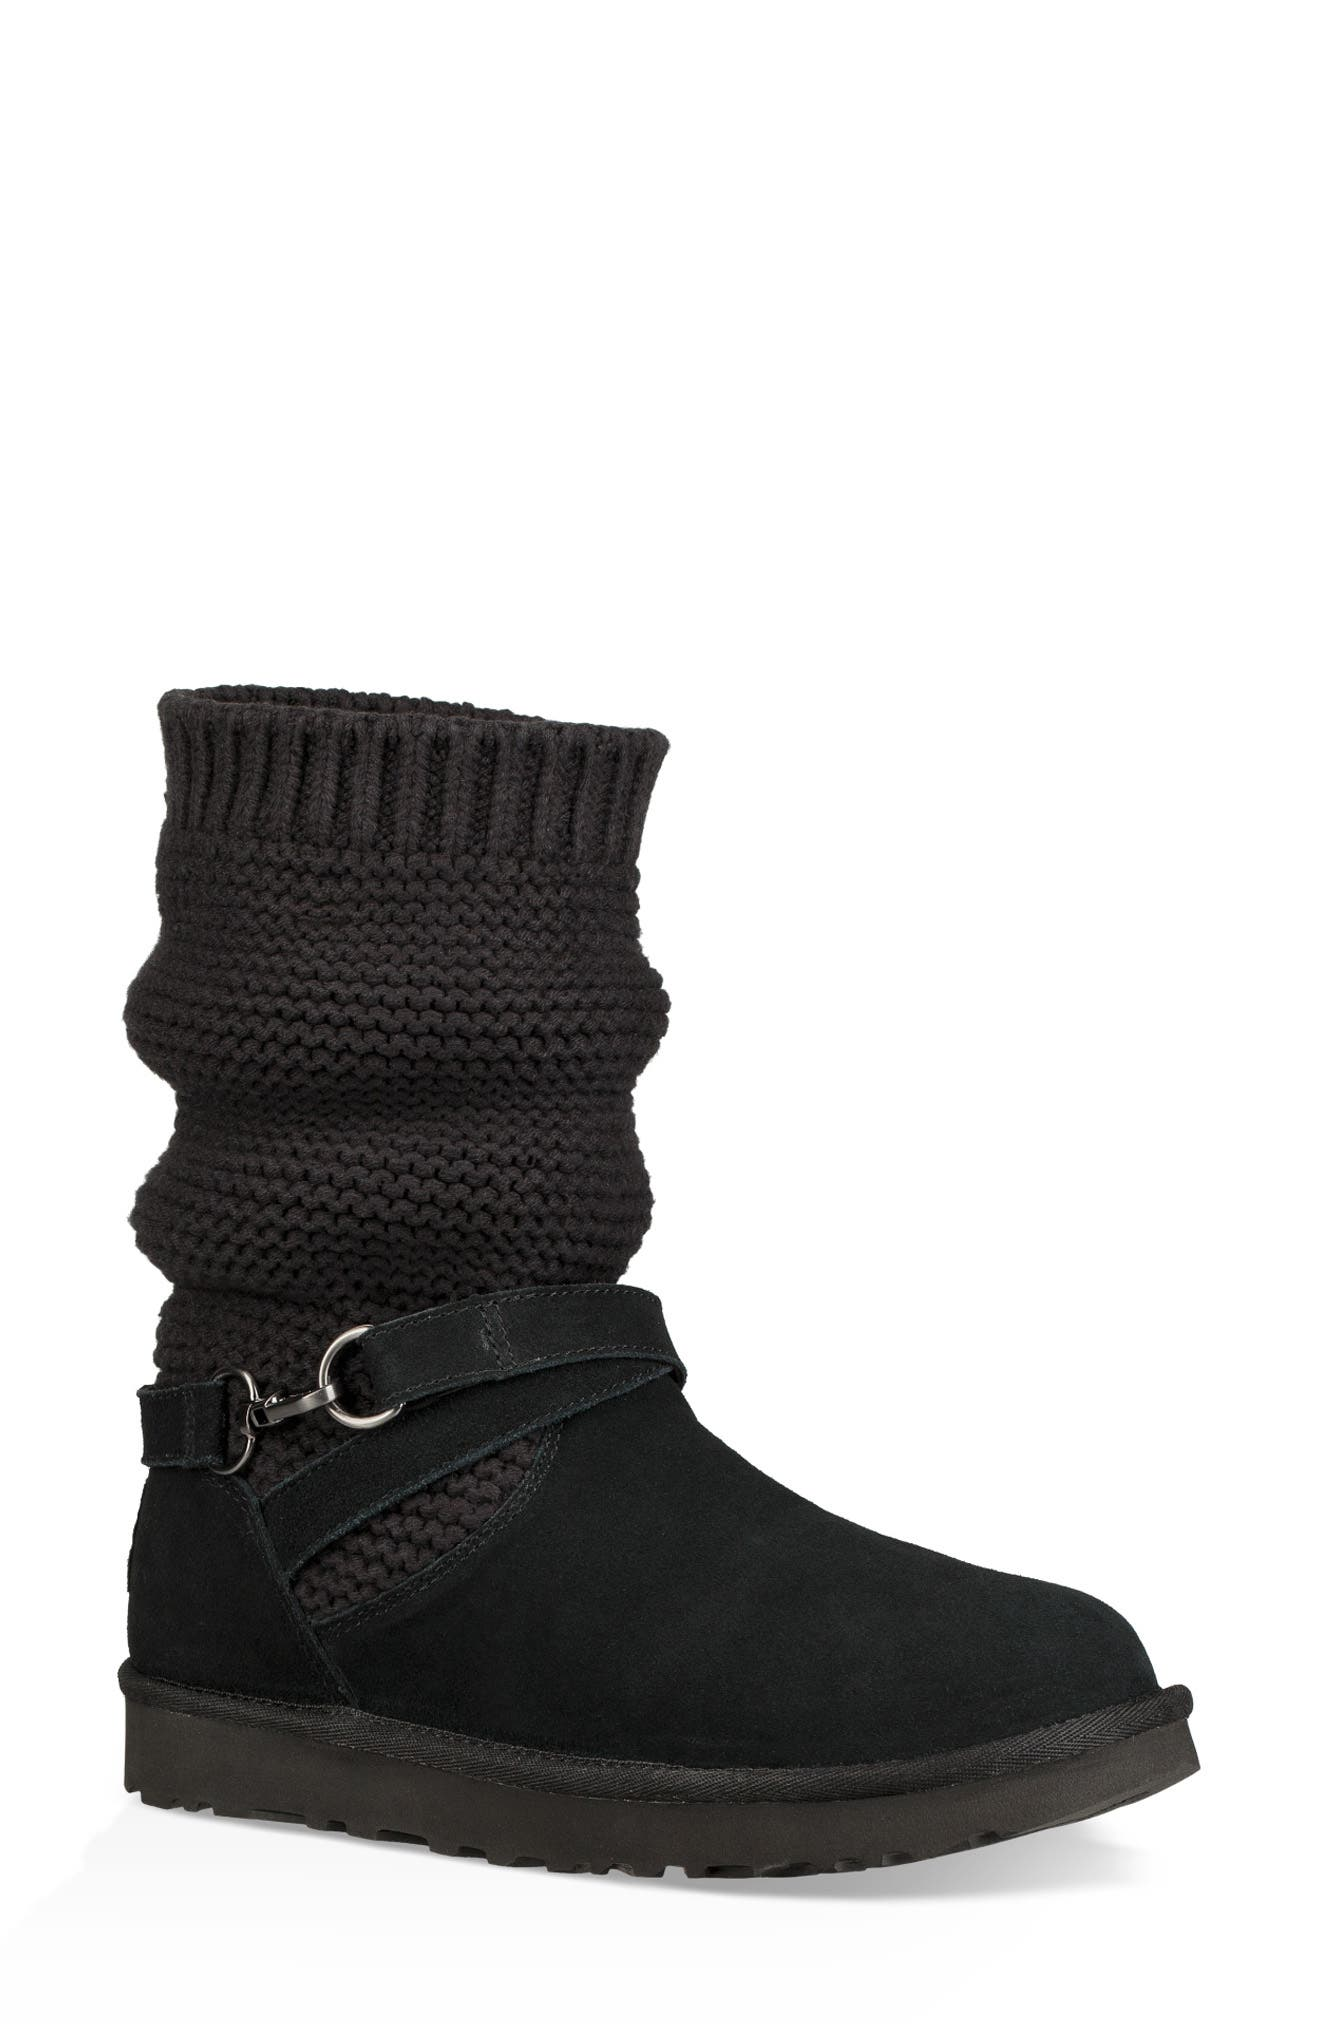 UGGpure<sup>™</sup> Strappy Purl Knit Bootie,                             Main thumbnail 1, color,                             BLACK SUEDE